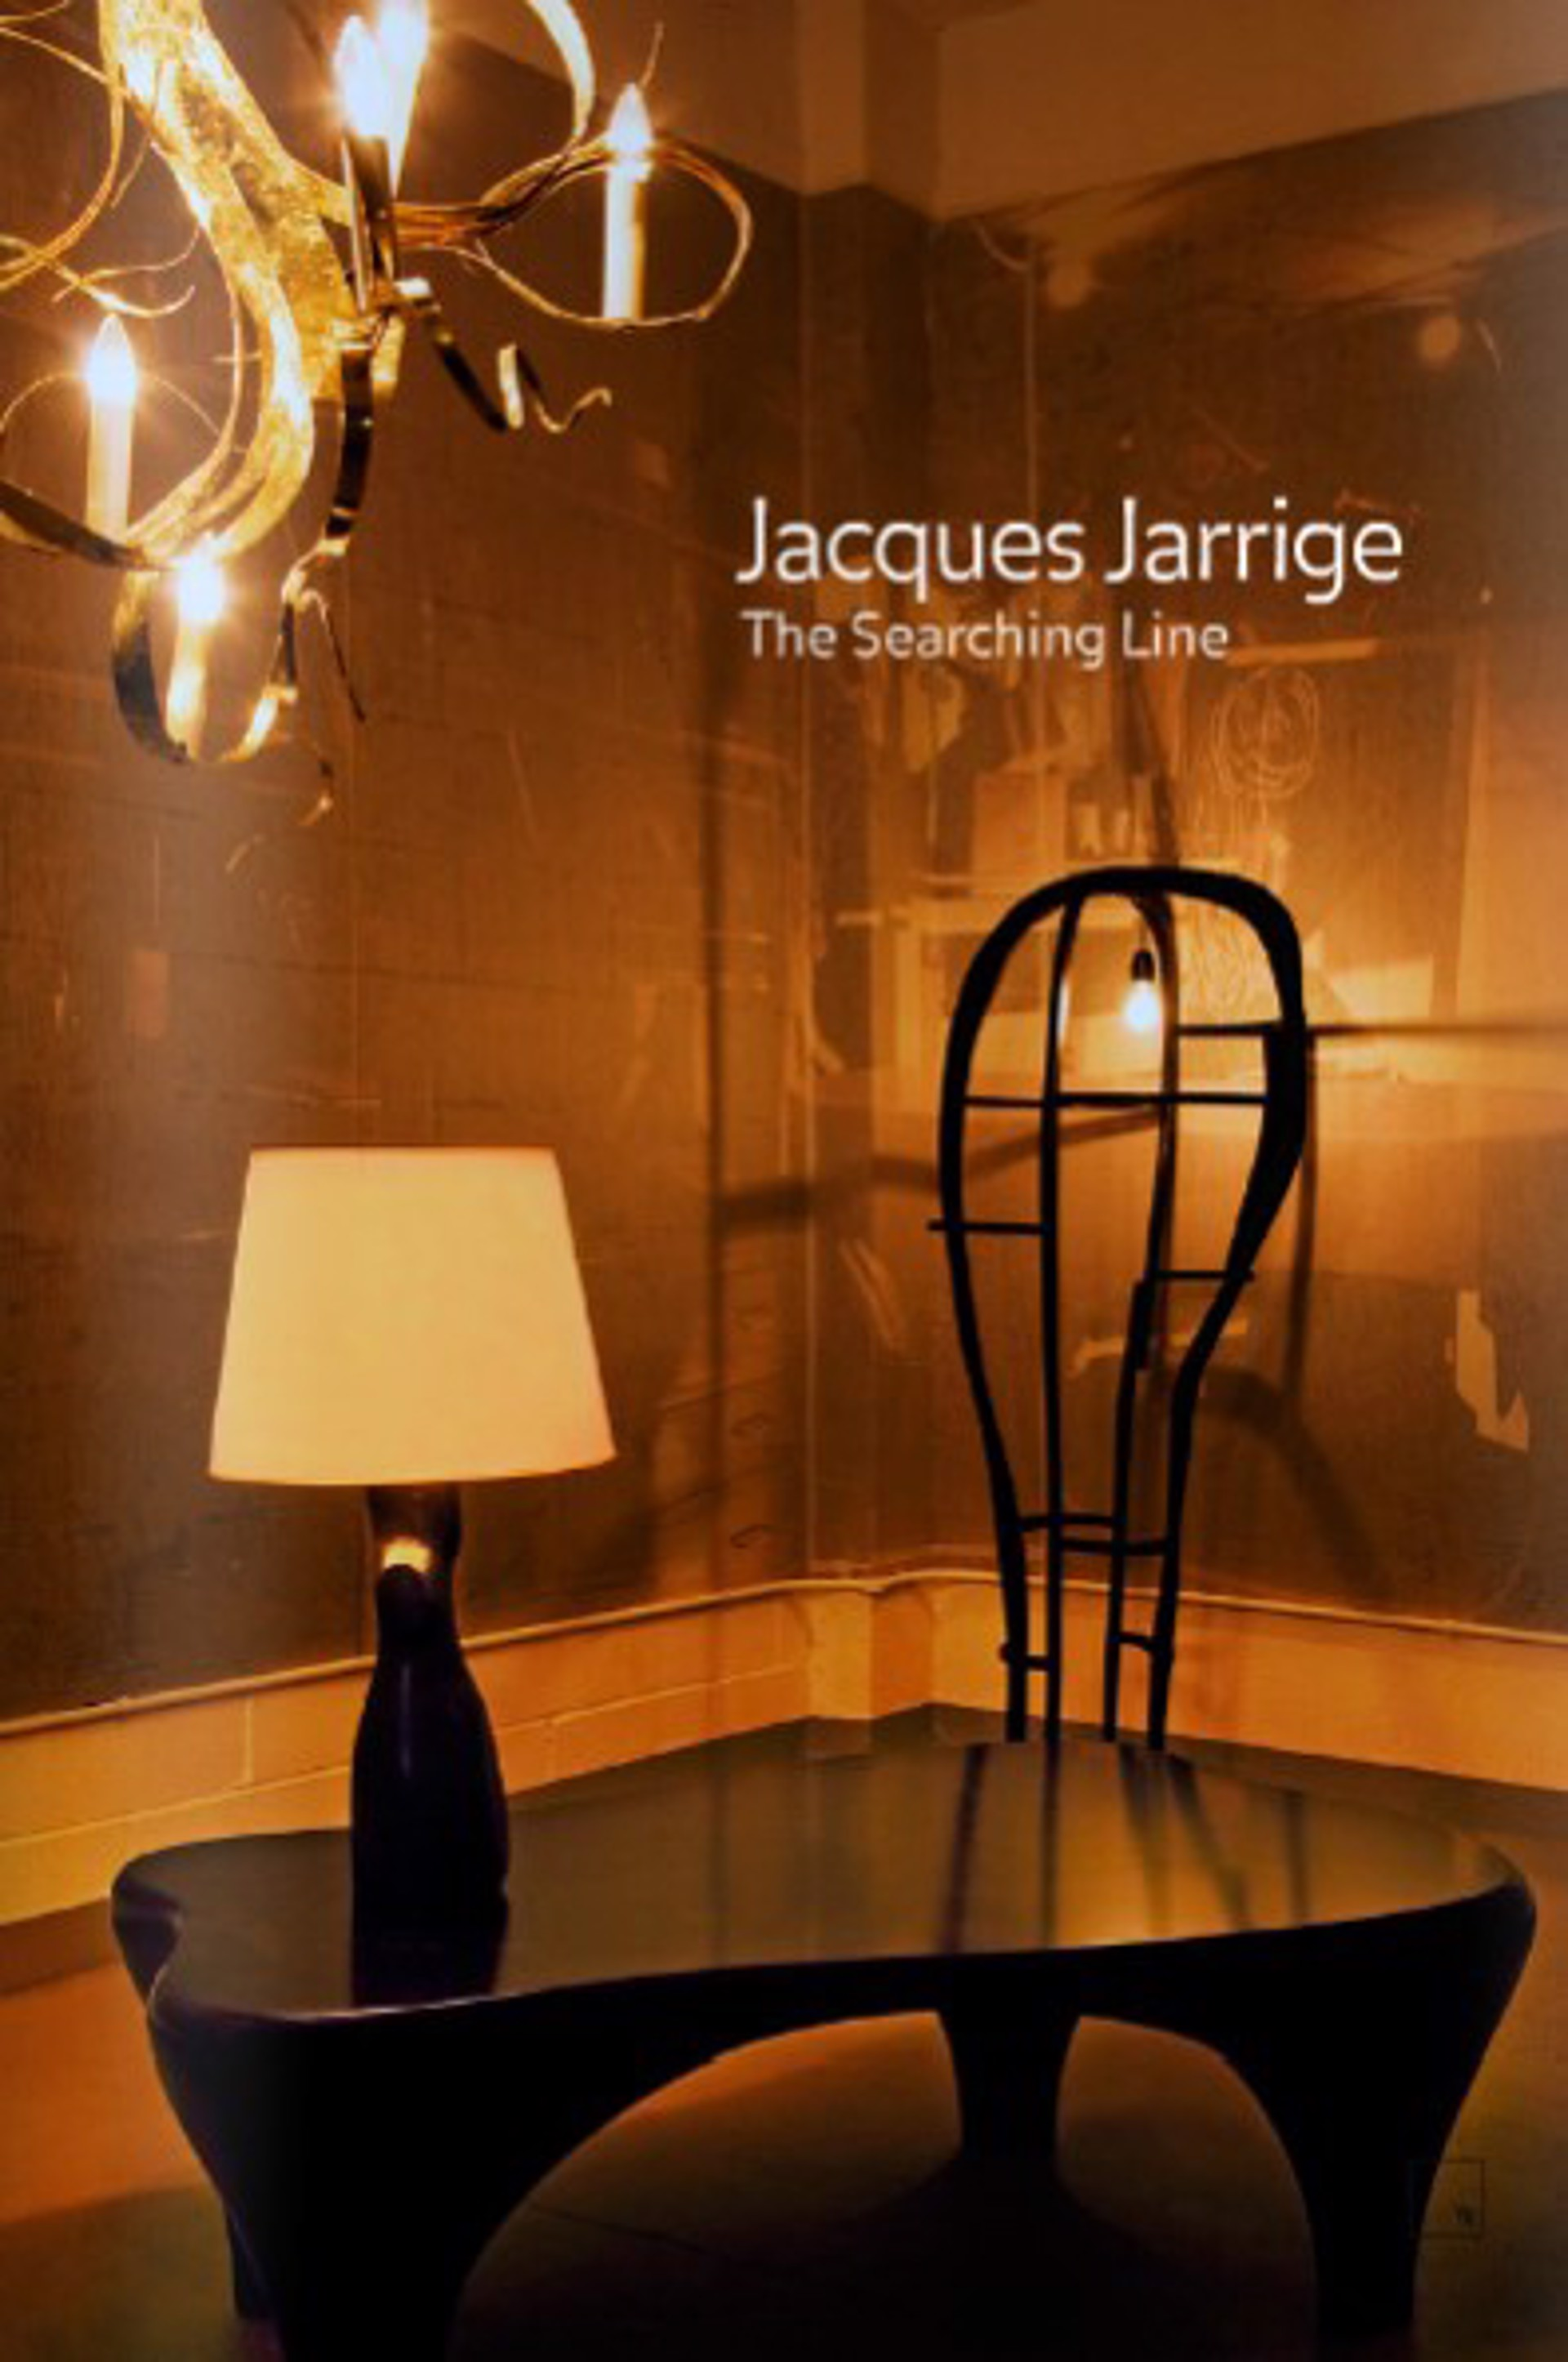 Jacques Jarrige, The Searching line